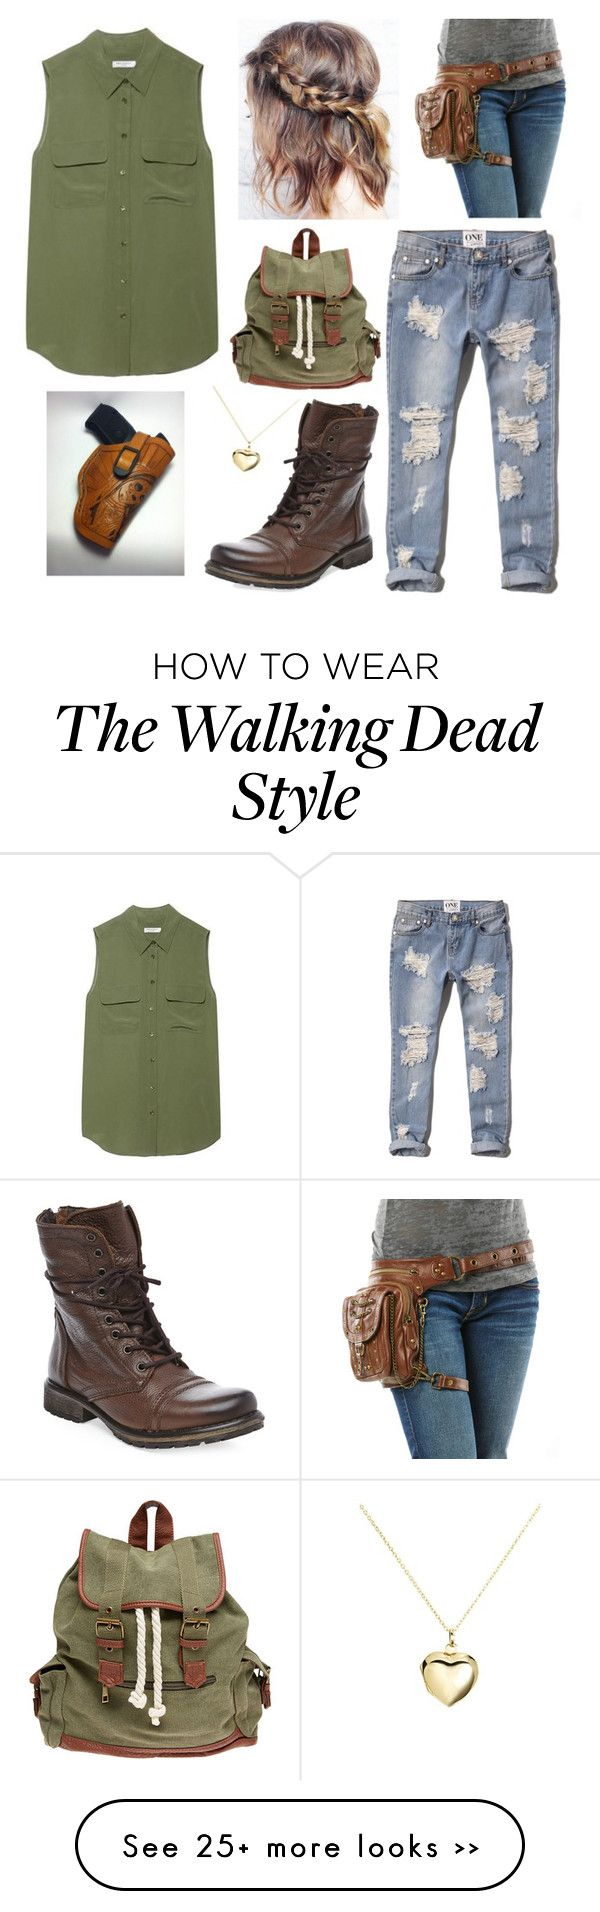 """""""the walking dead cosplay"""" by my-abbs on Polyvore featuring Equipment, Abercrombie & Fitch, Steve Madden, Wet Seal and Argento Vivo"""